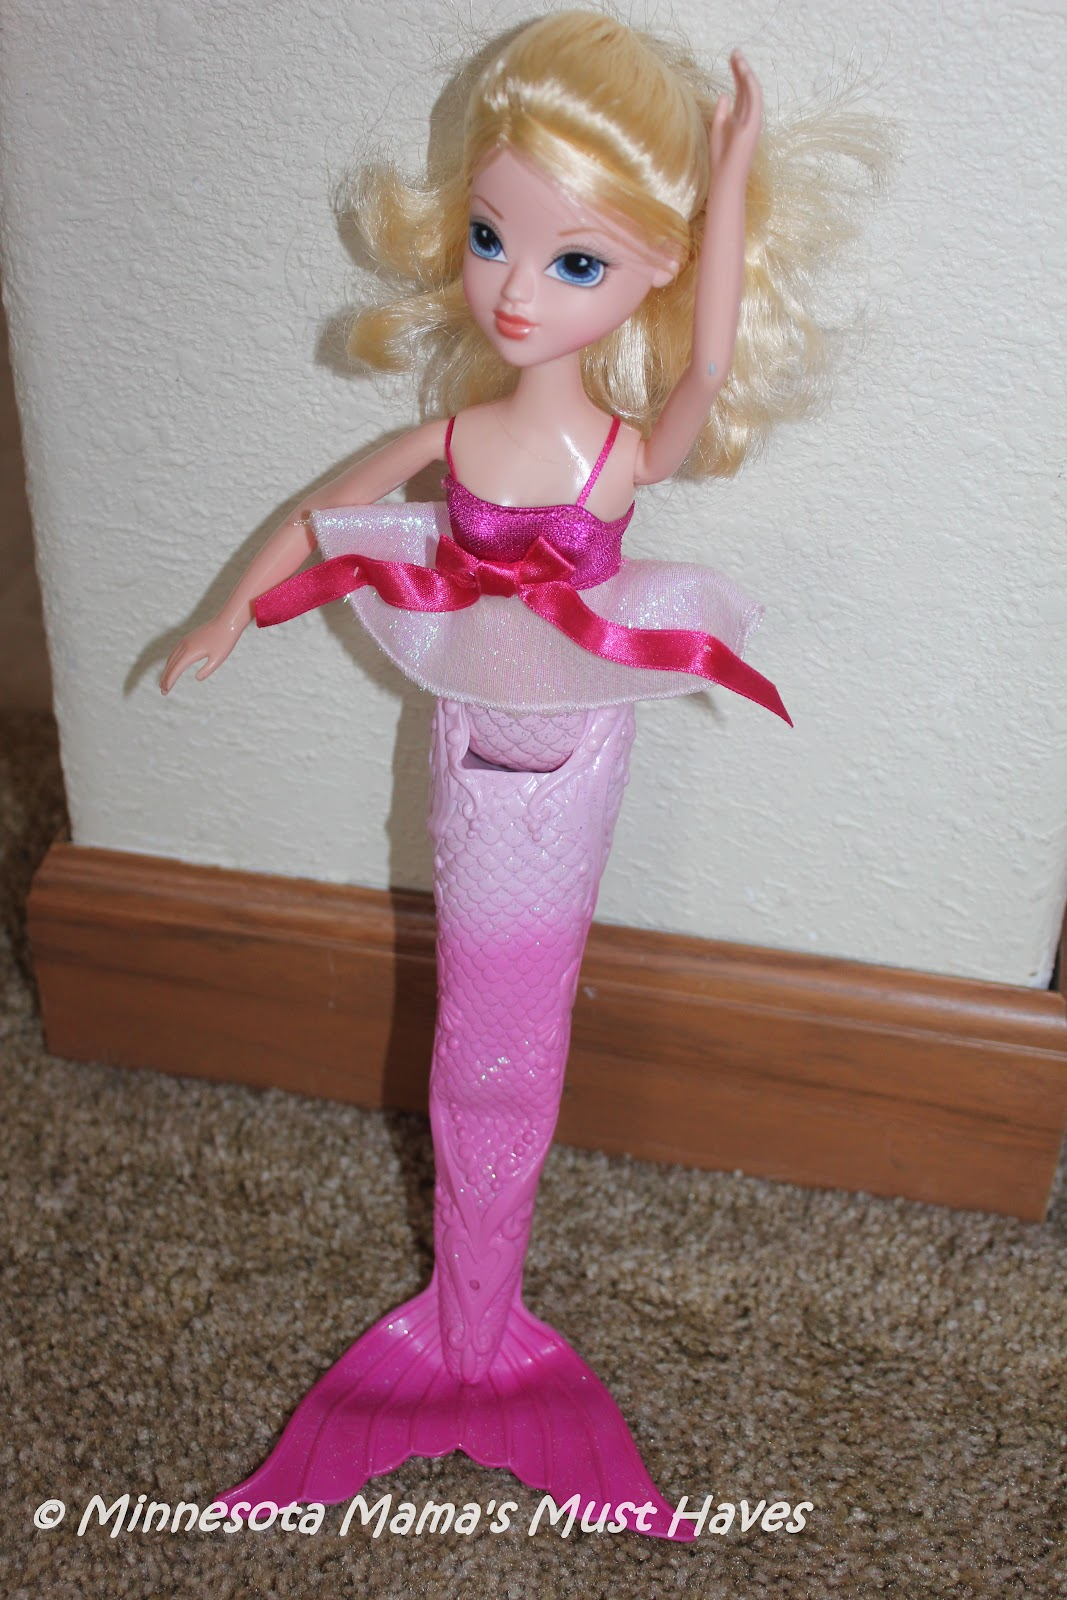 Fun Summer Water Toy Moxie Girlz Magic Swim Mermaid Doll Review Giveaway Must Have Mom